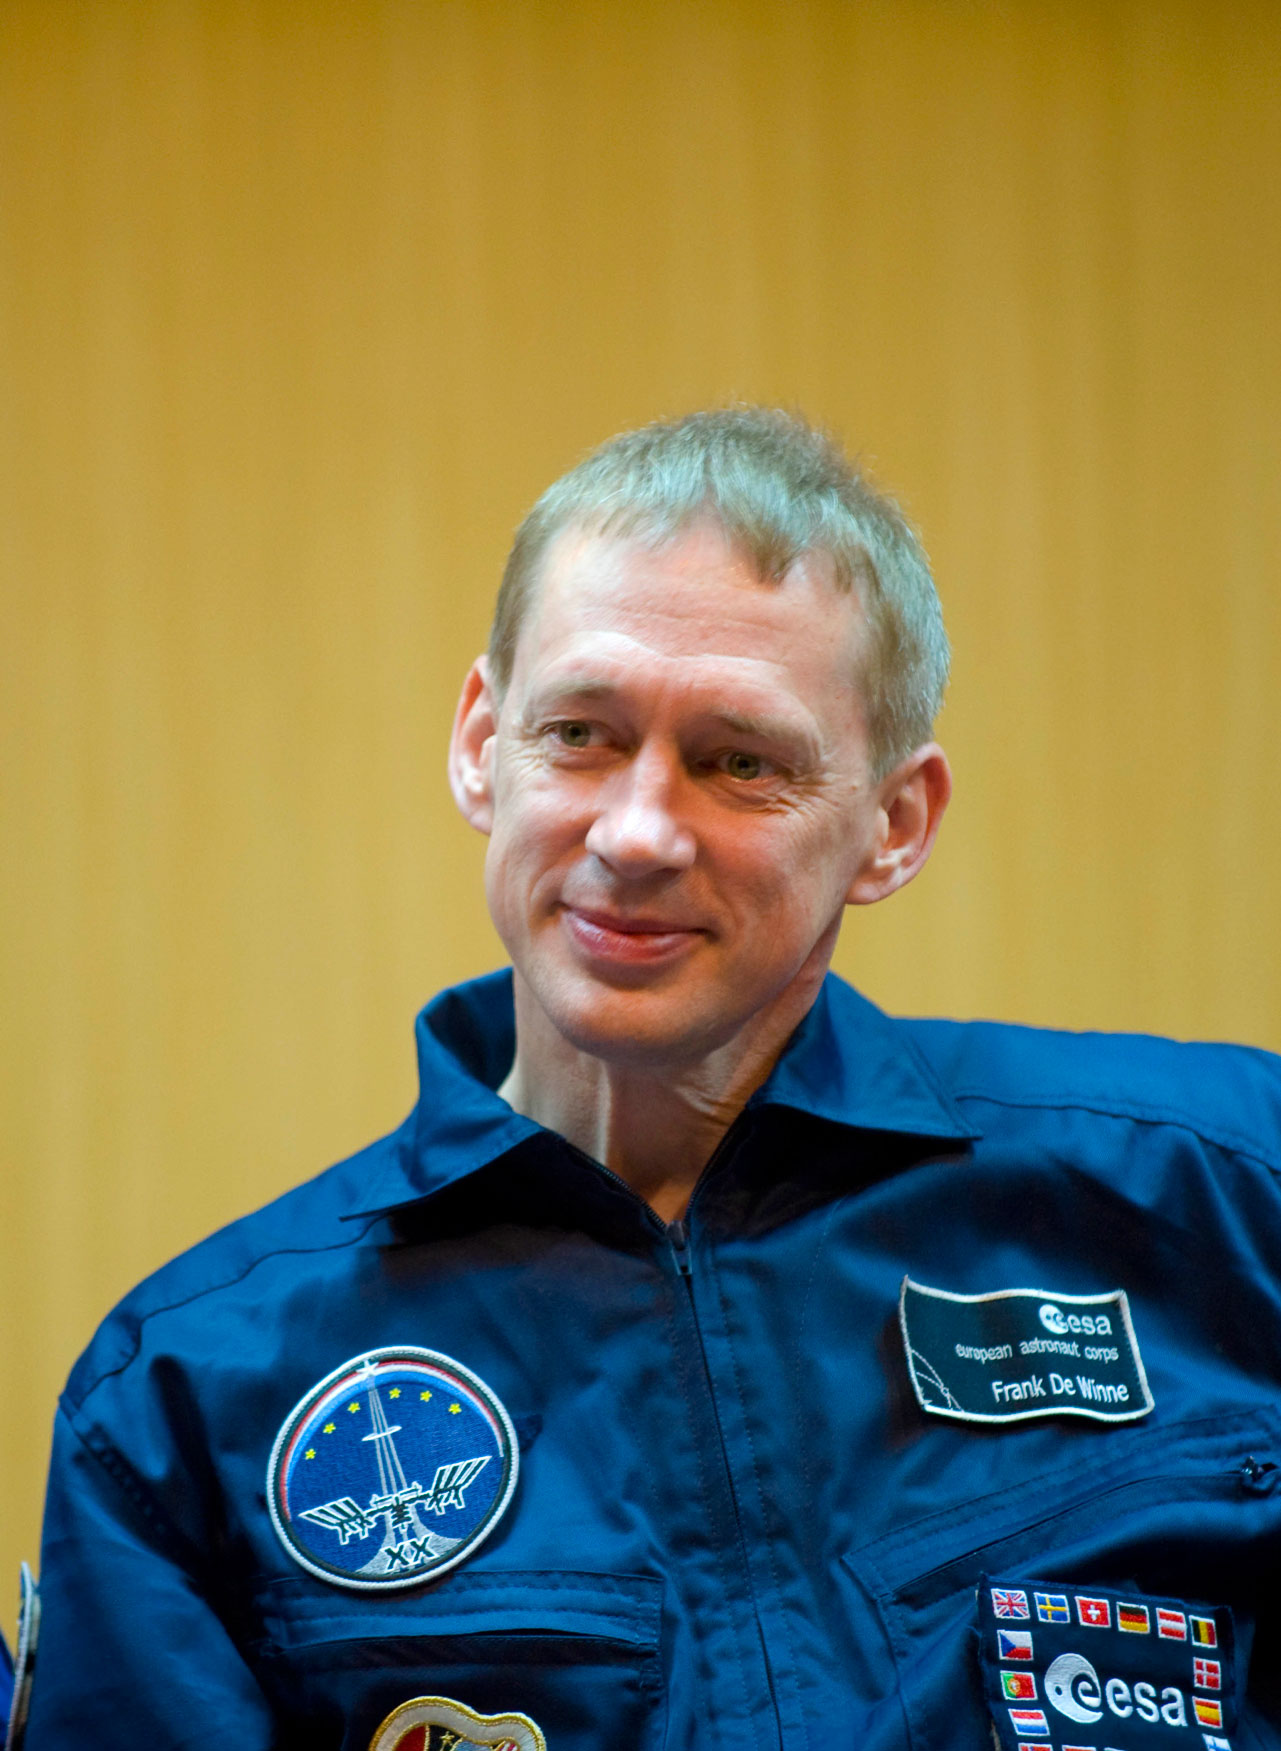 ESA_astronaut_Frank_De_Winne_during_pre-launch_press_conference